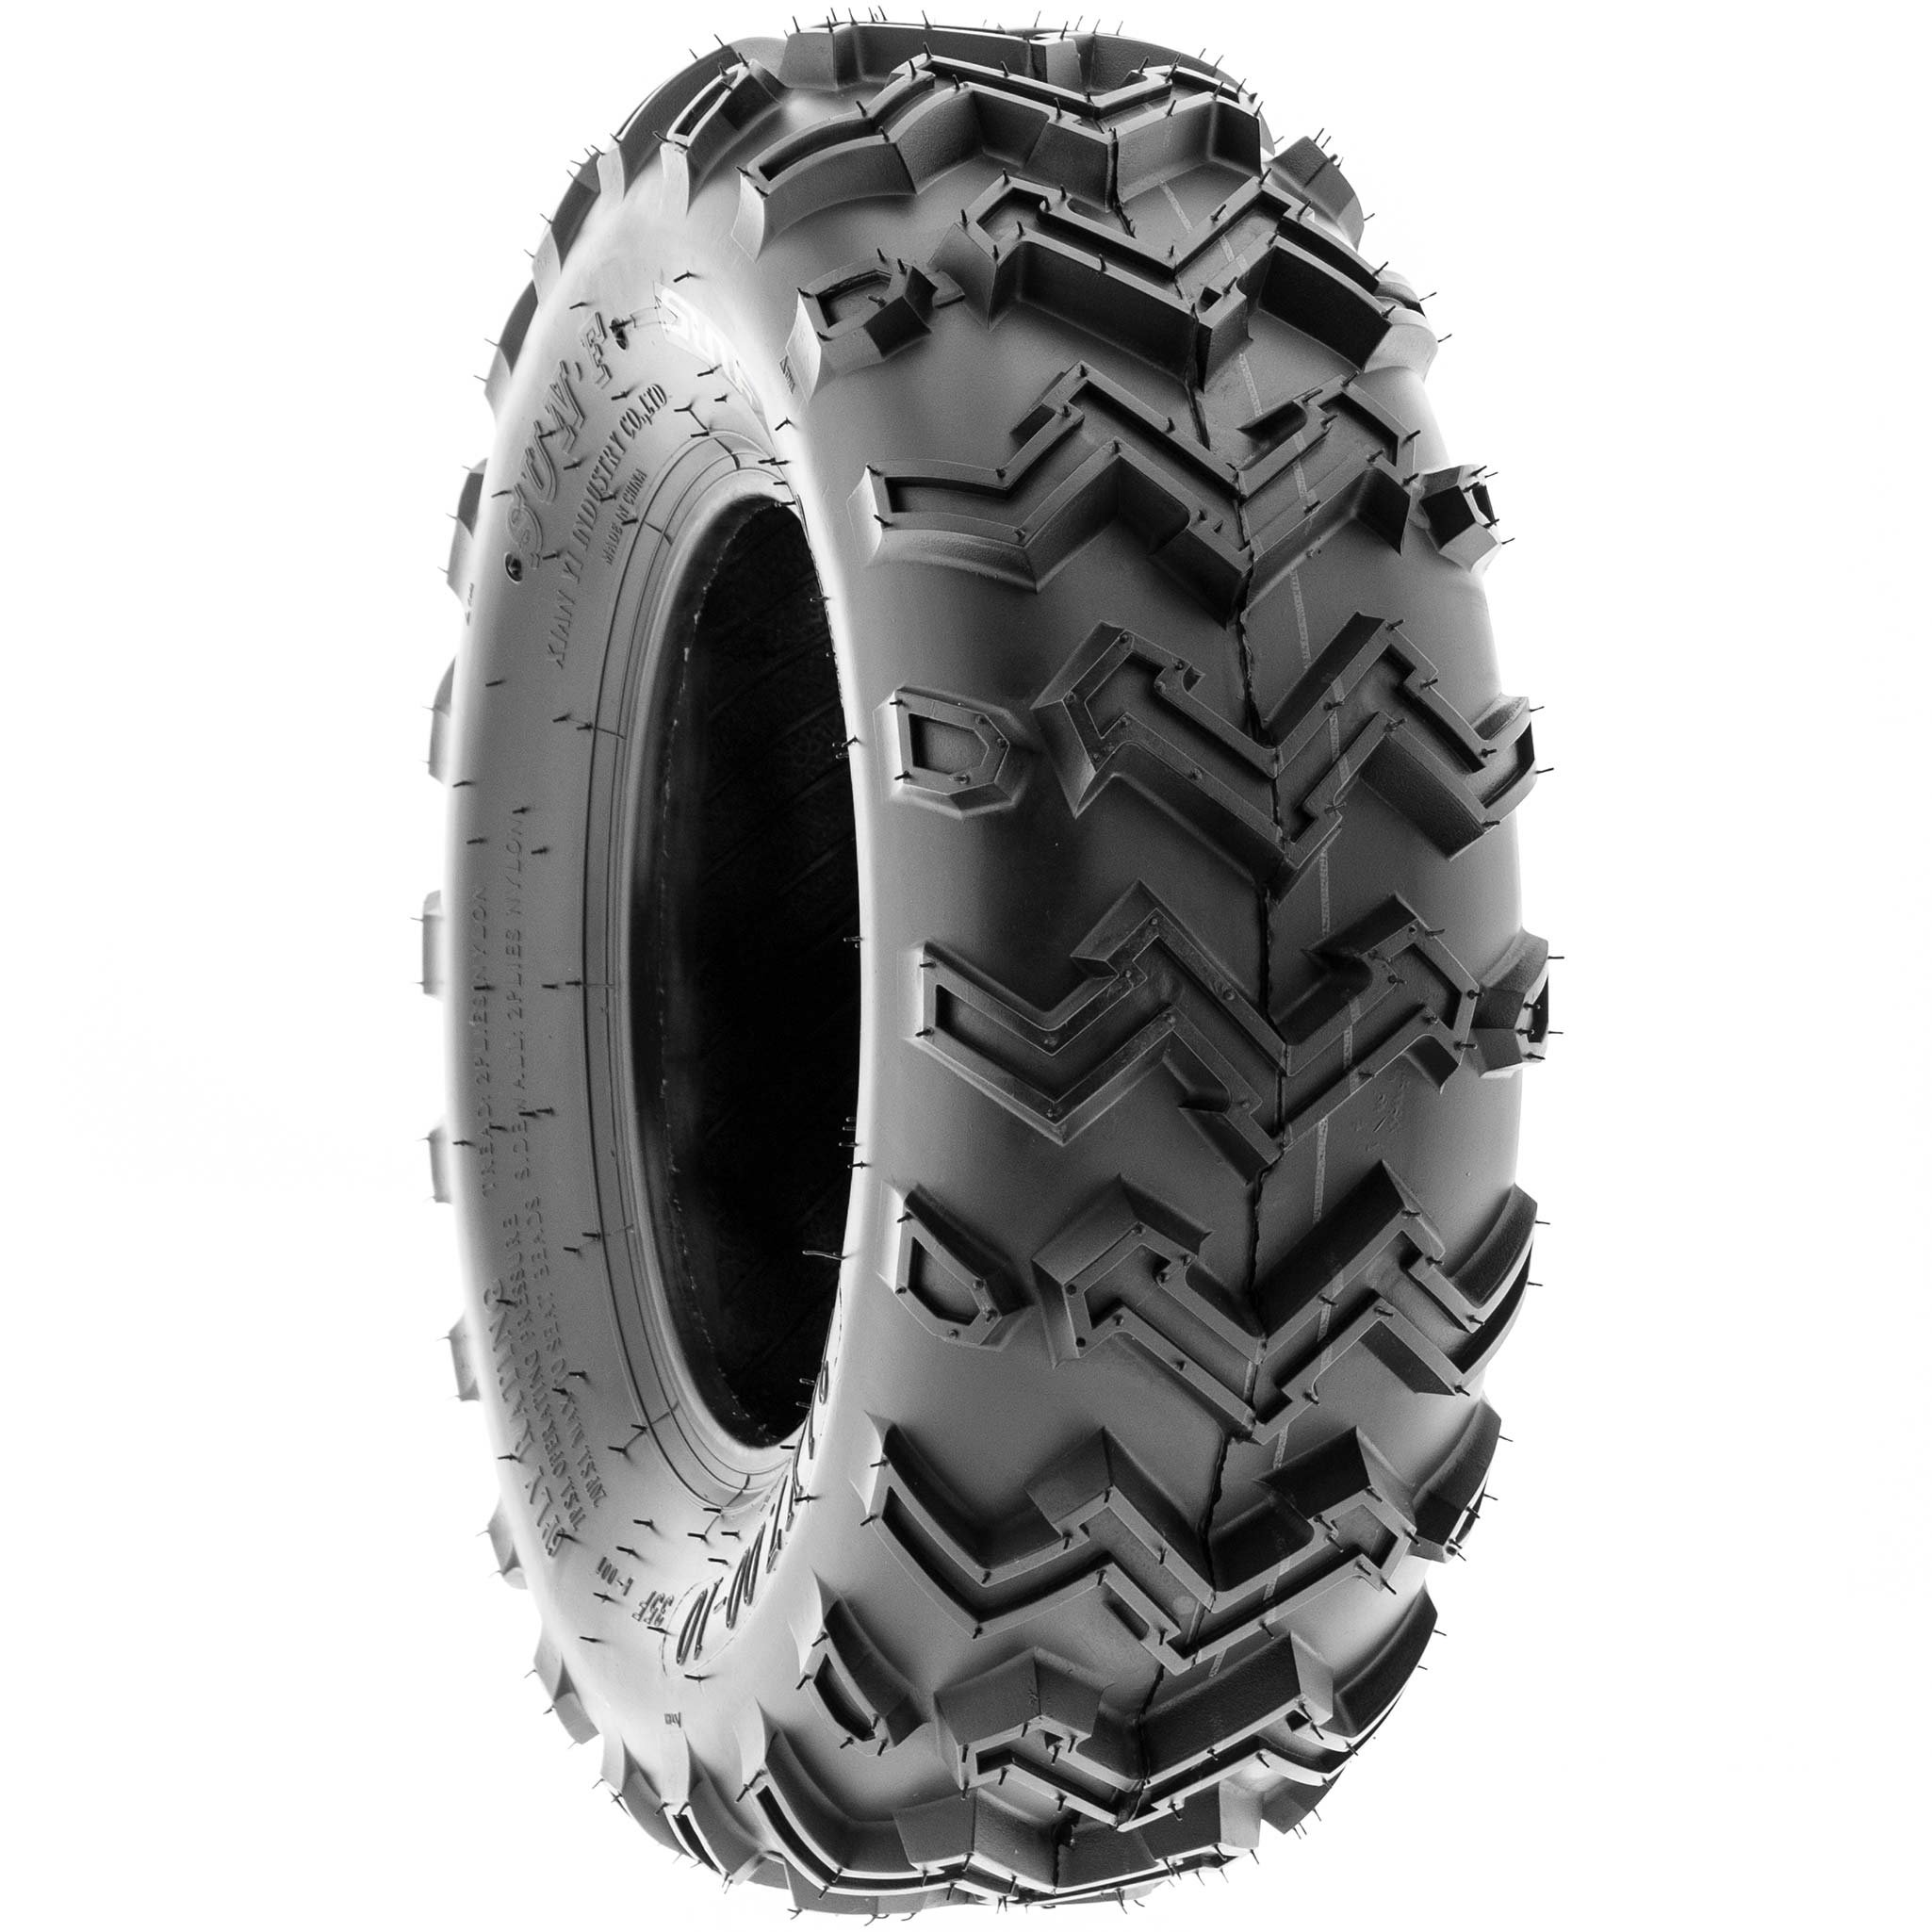 SunF 21x7-10 21x7x10 ATV UTV All Terrain Race Replacement 6 PR Tubeless Tires A001, [Set of 2] by SunF (Image #6)